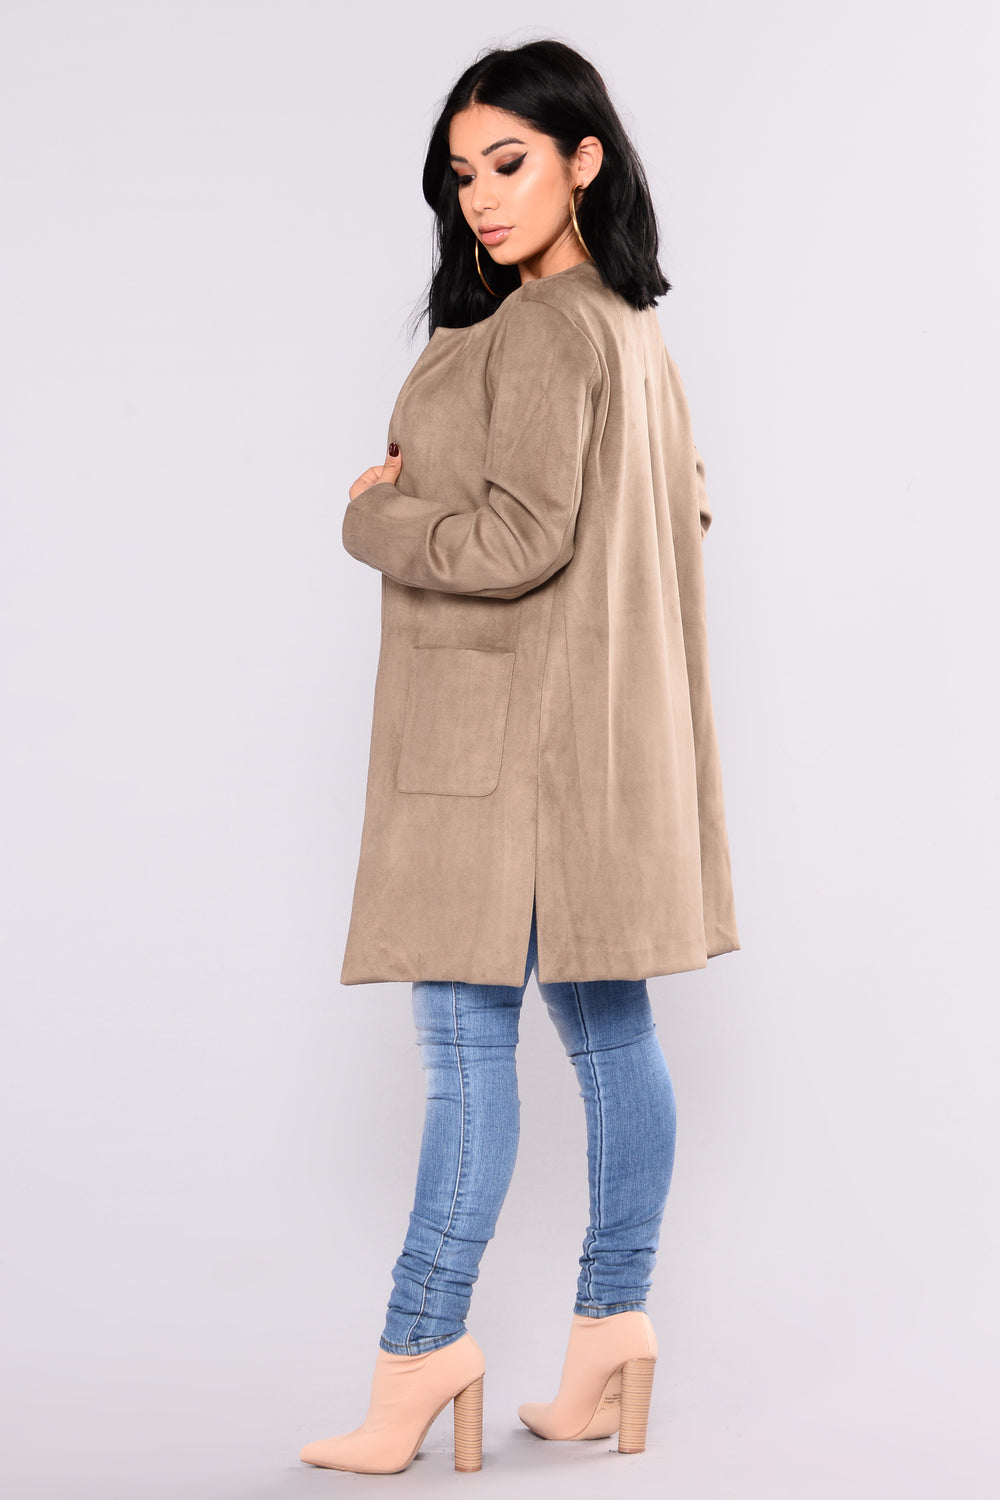 Lucca Collarless Suede Jacket - Olive